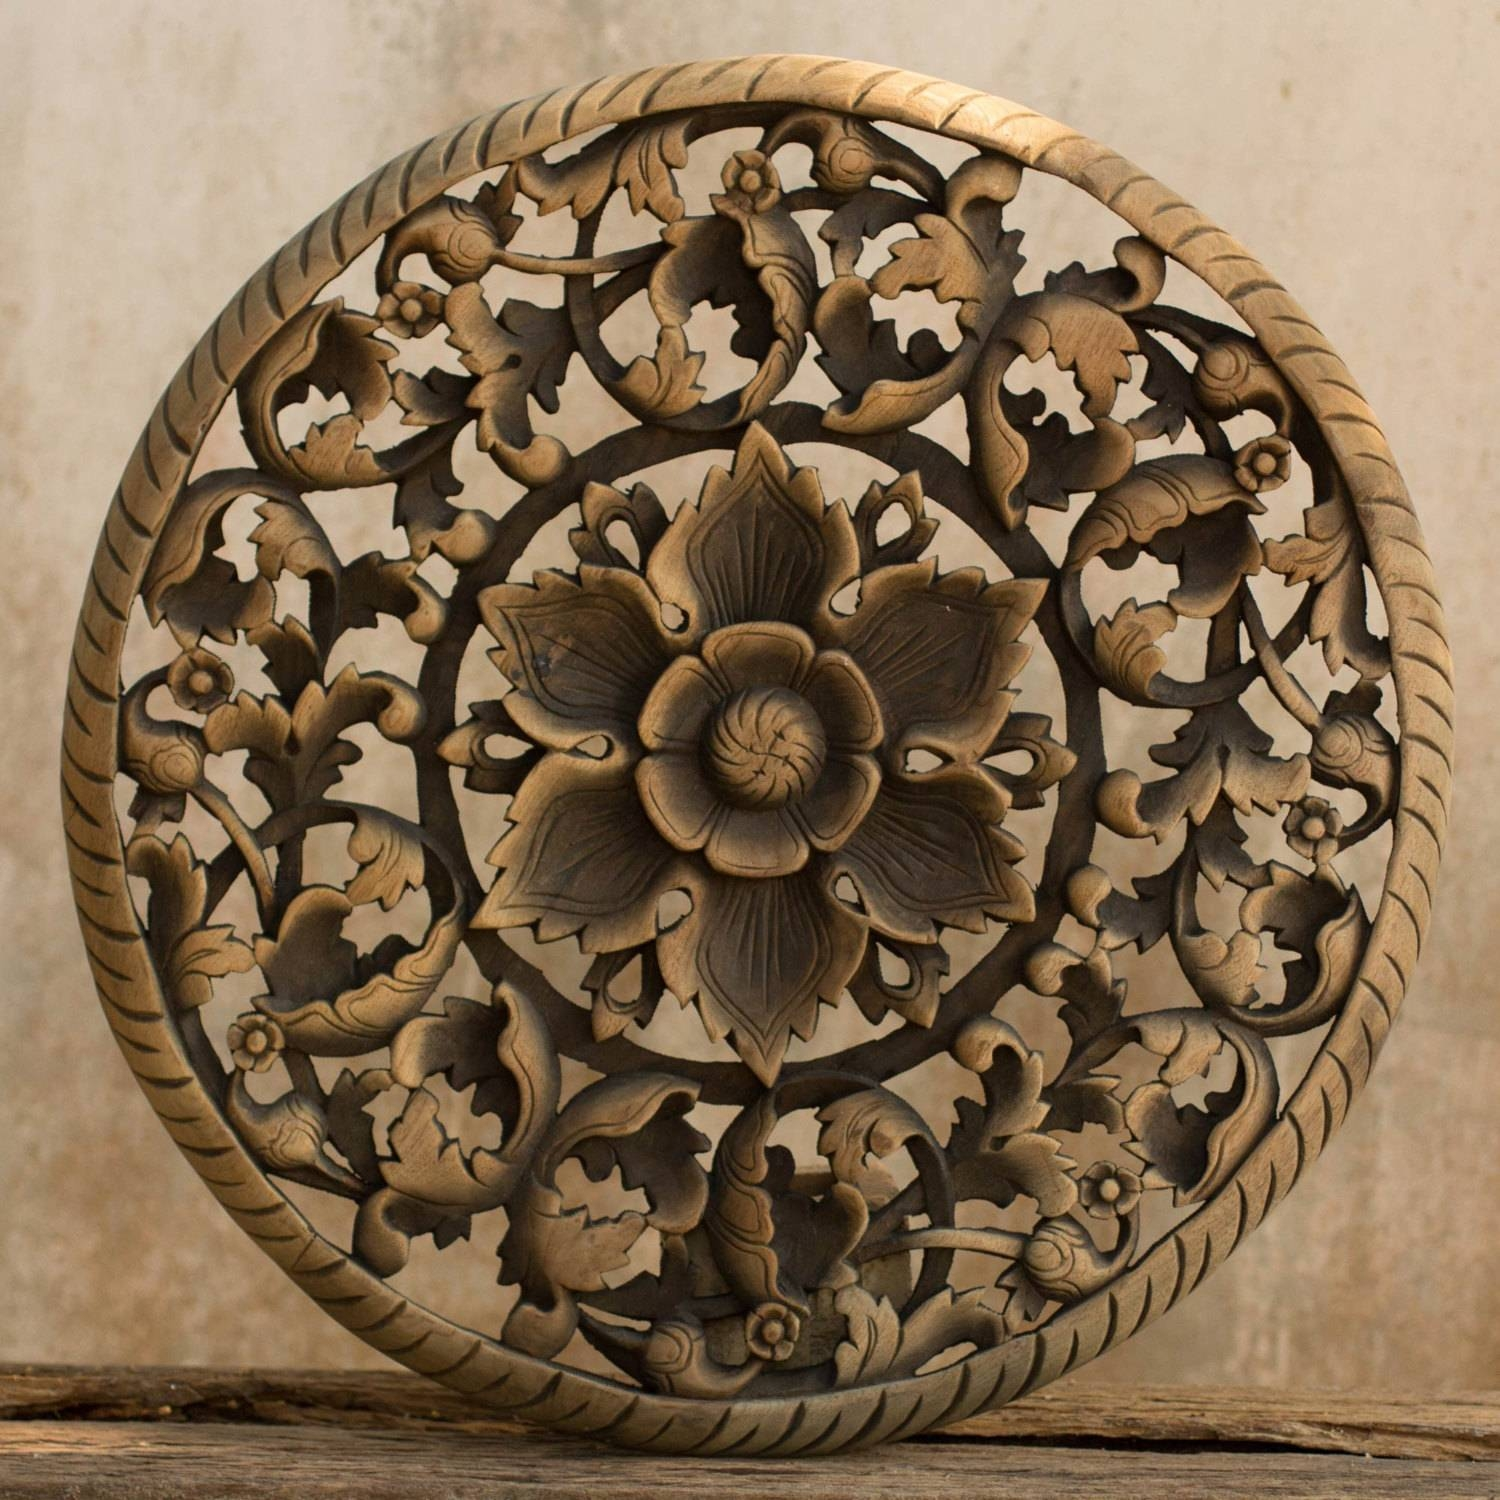 Tree Dimensional Floral Wooden Wall Hanging – Siam Sawadee Pertaining To Current Wood Carved Wall Art Panels (View 21 of 25)